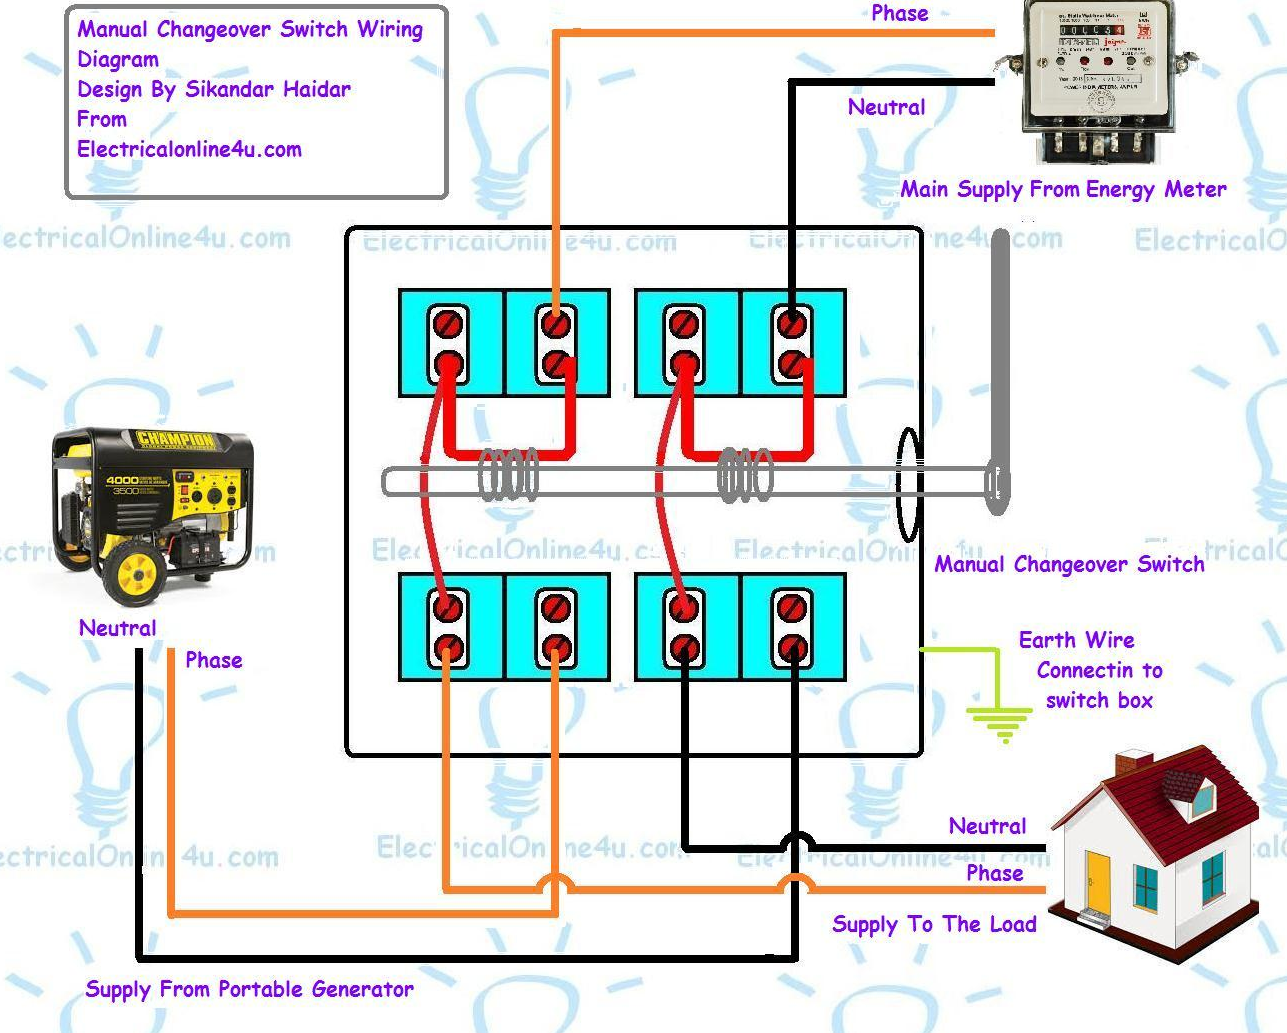 Home Wiring Diagram Maker Basic Guide Tv Electrical House Manual Changeover Switch For Portable Software Free